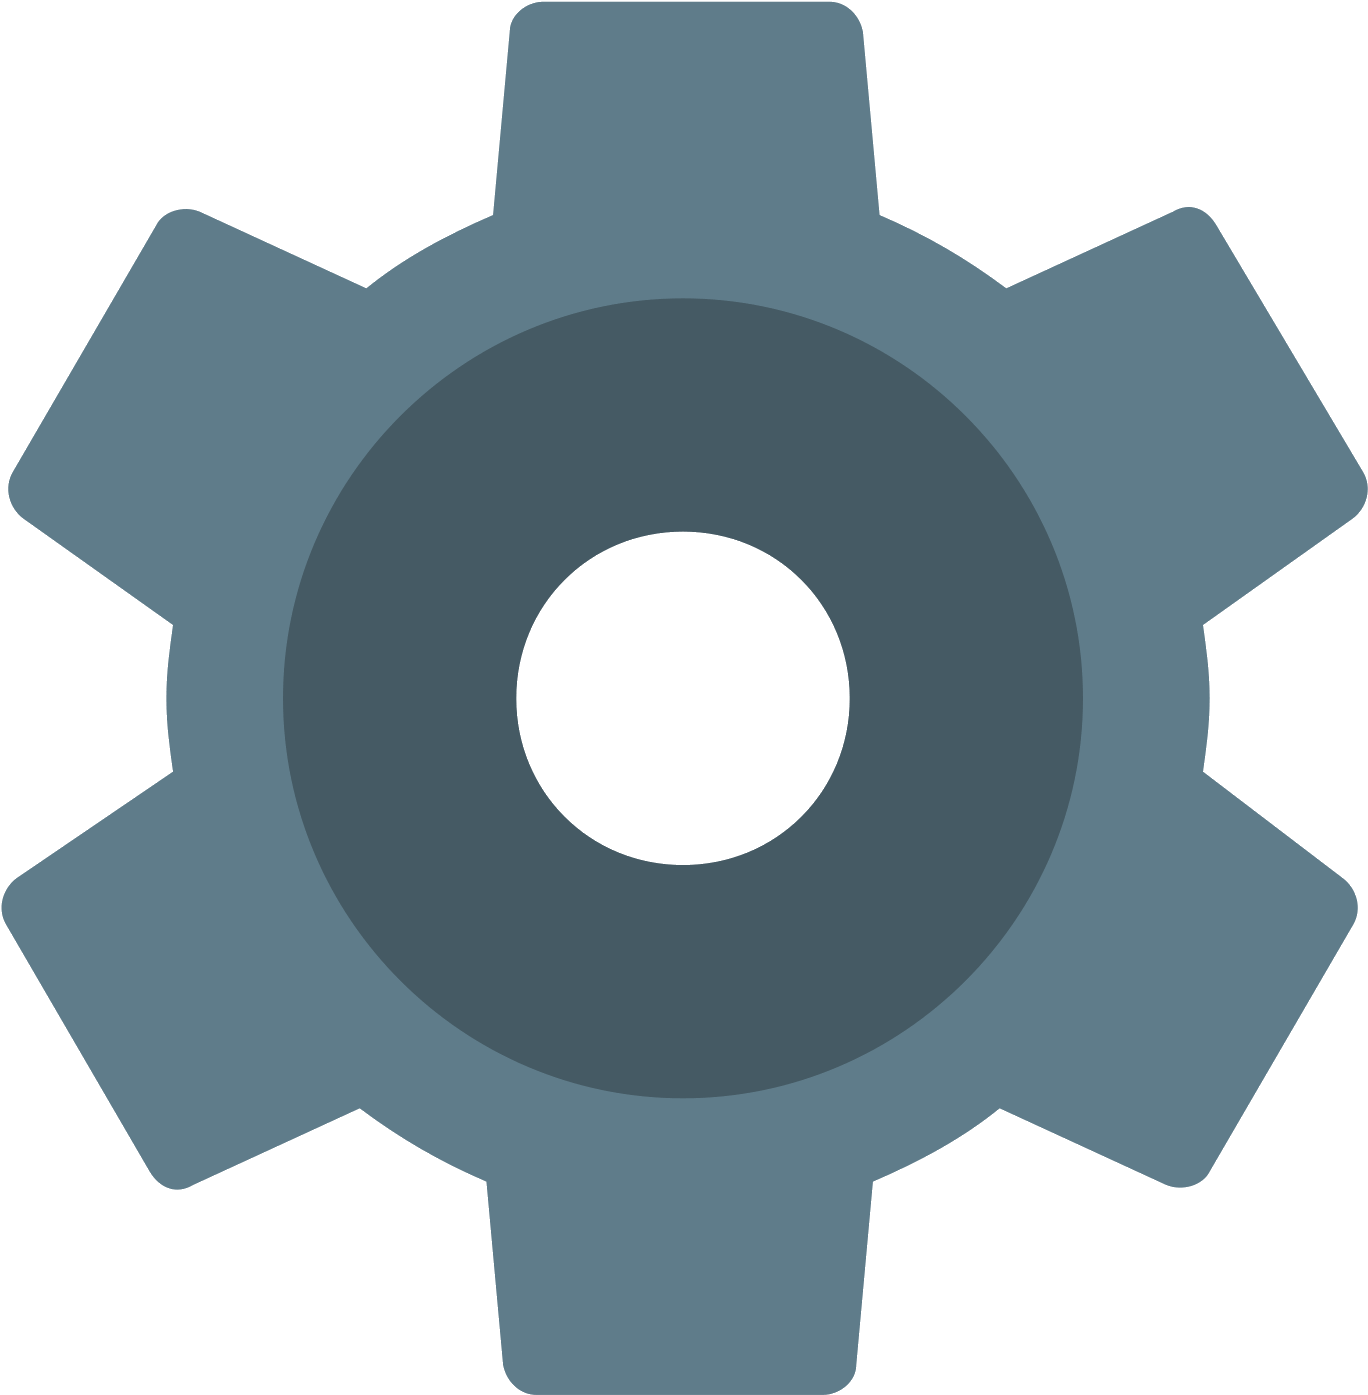 This Icon Represents Settings.